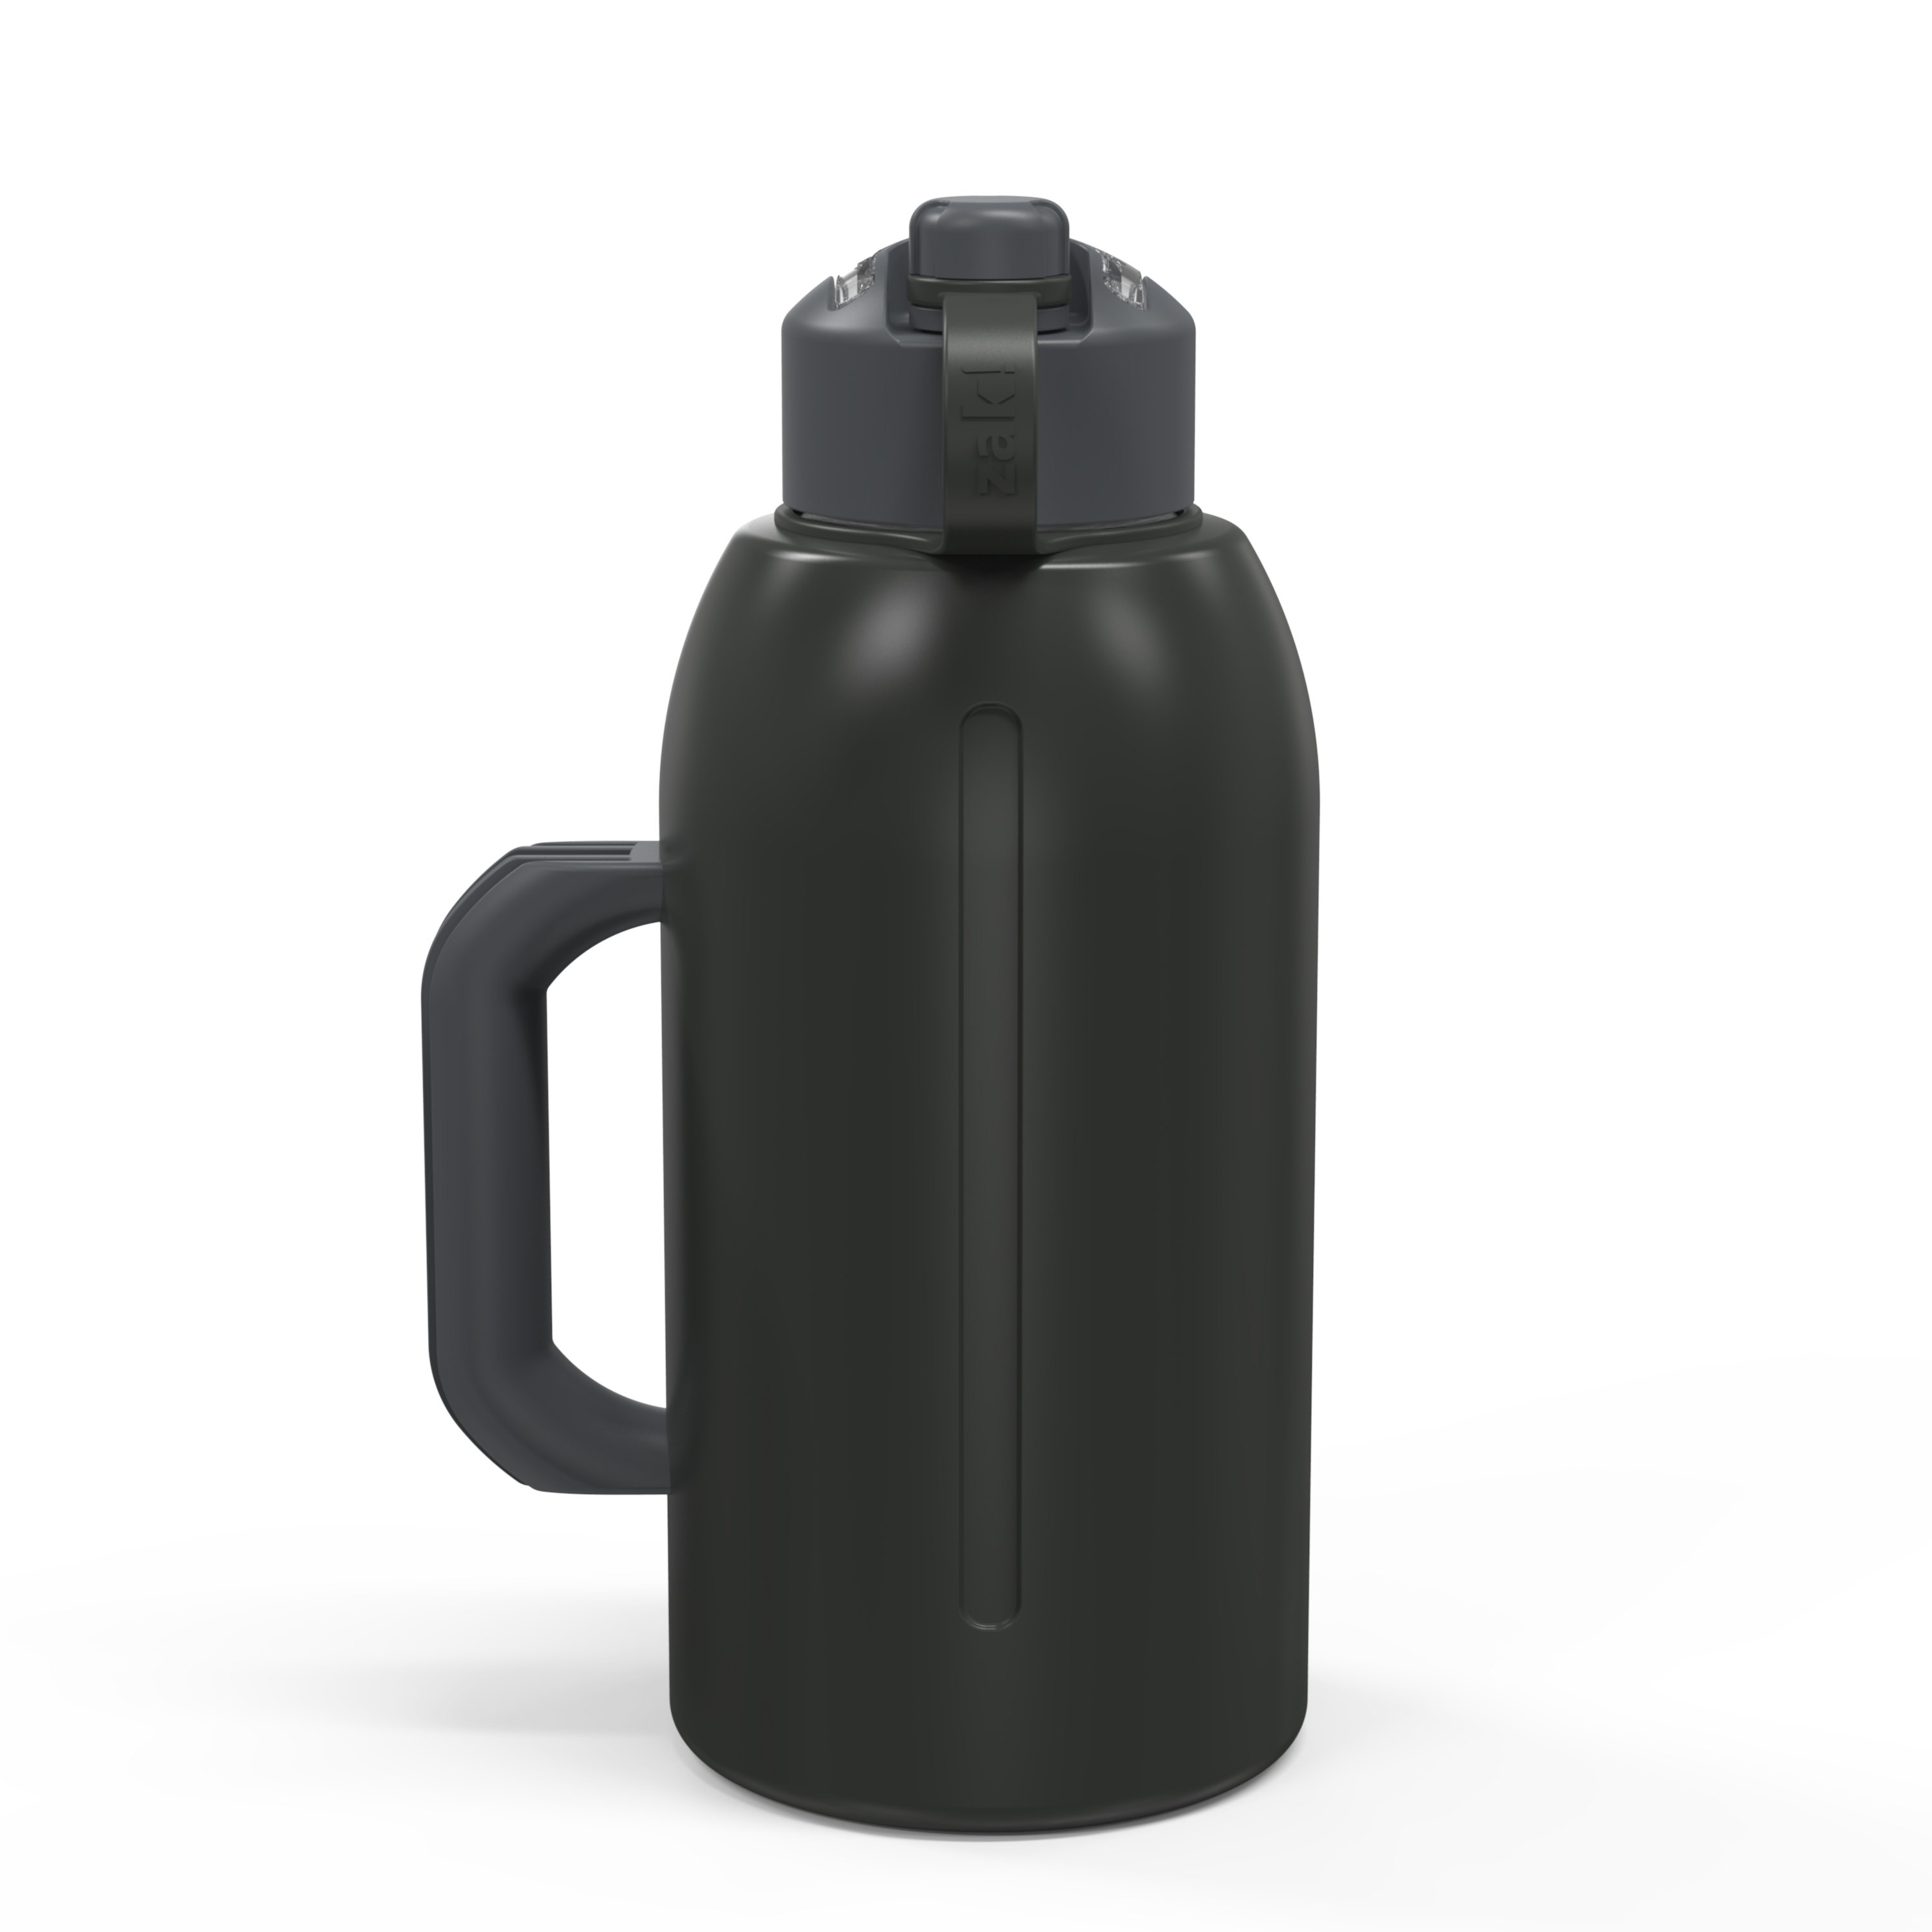 Genesis 64 ounce Vacuum Insulated Stainless Steel Tumbler, Charcoal slideshow image 8